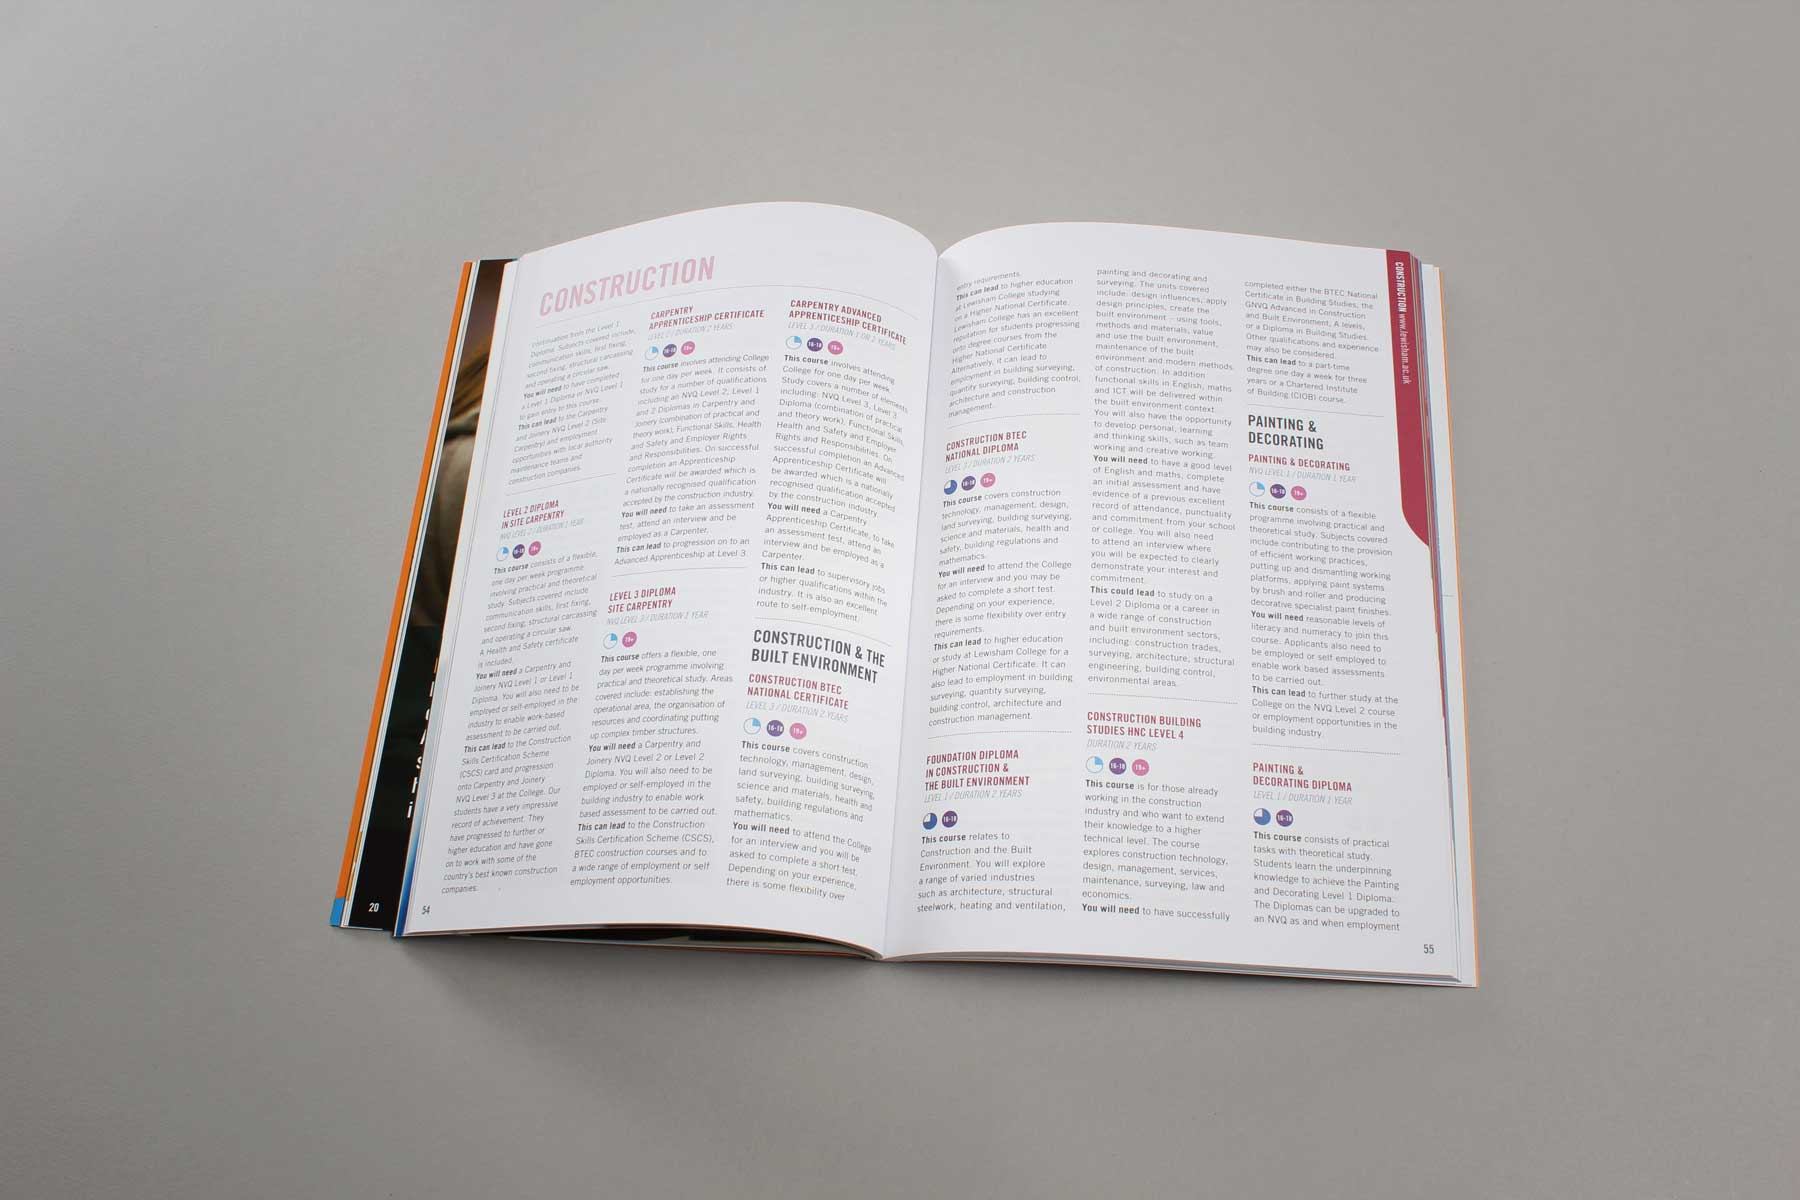 The listings have been carefully crafted for ease of reading and reference.